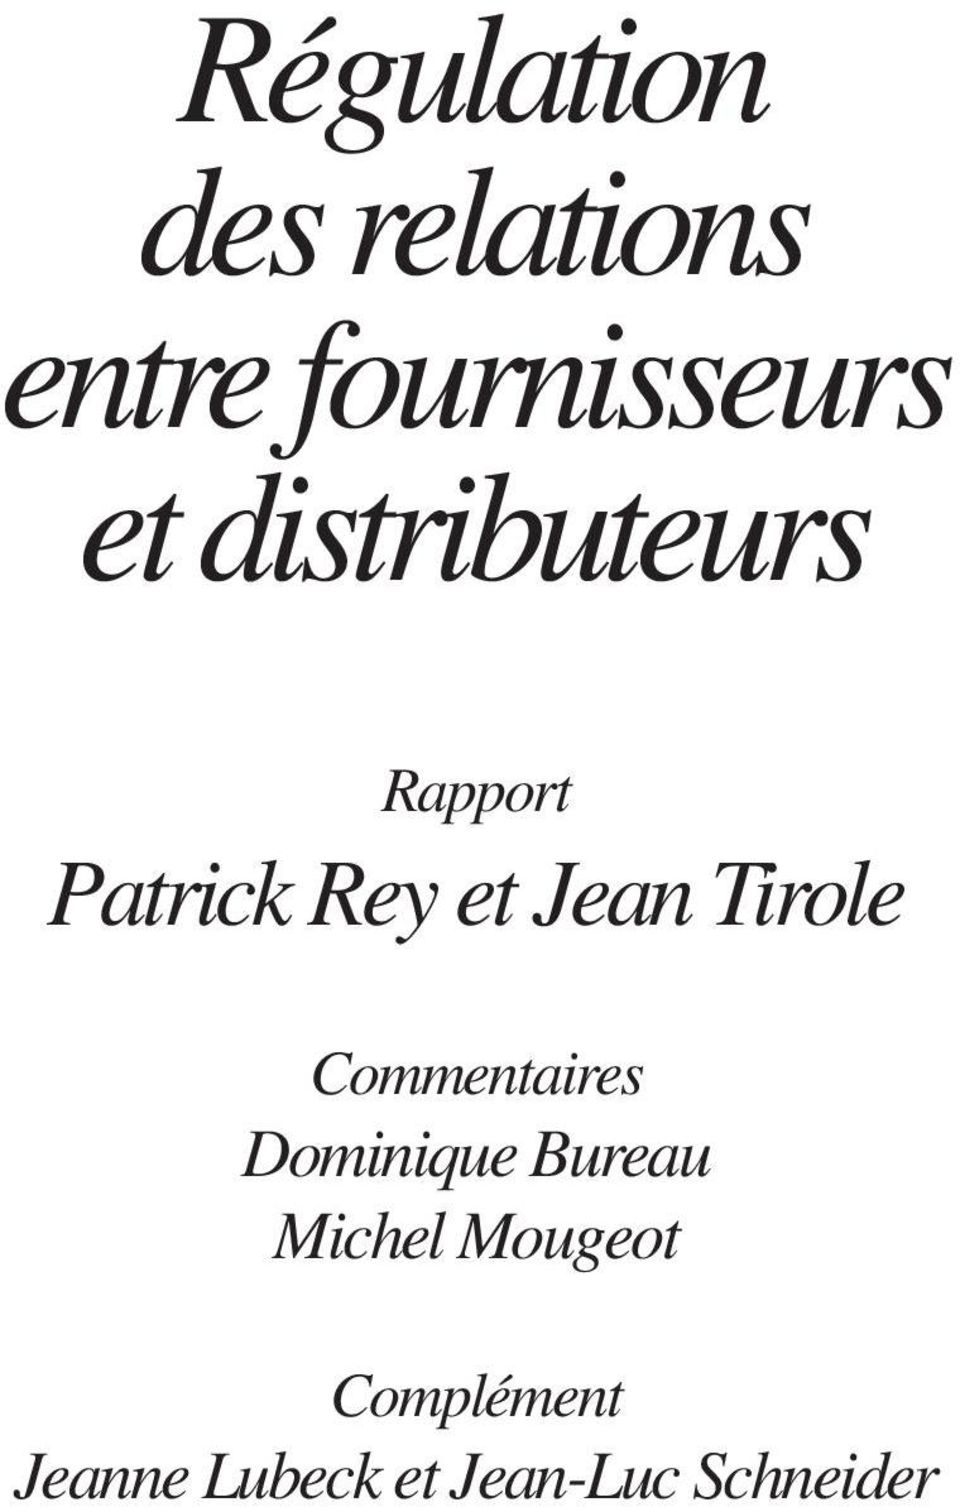 Tirole Commentaires Dominique Bureau Michel